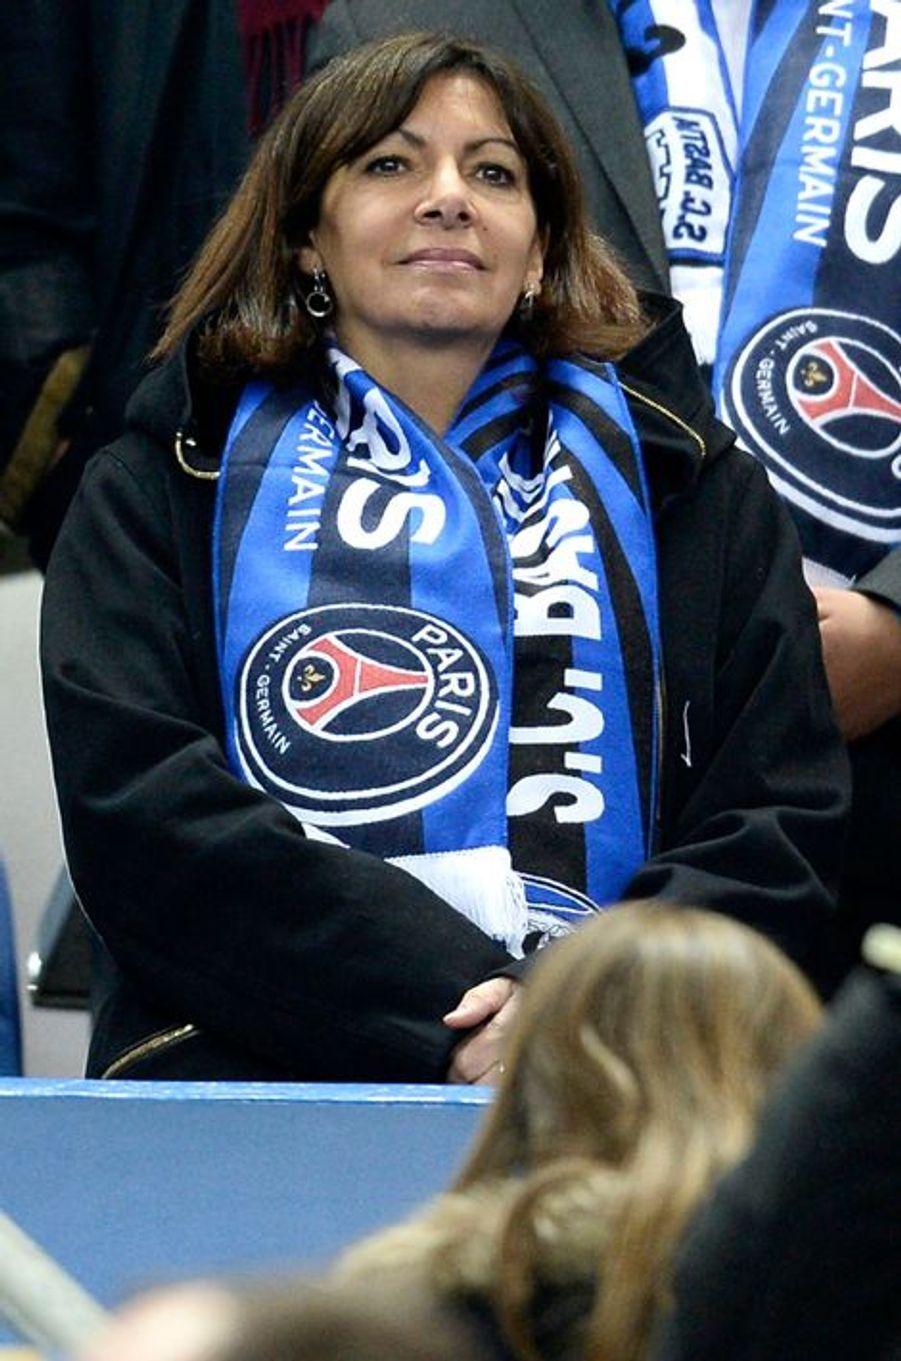 Anne Hidalgo au Stade de France, le 11 avril 2015